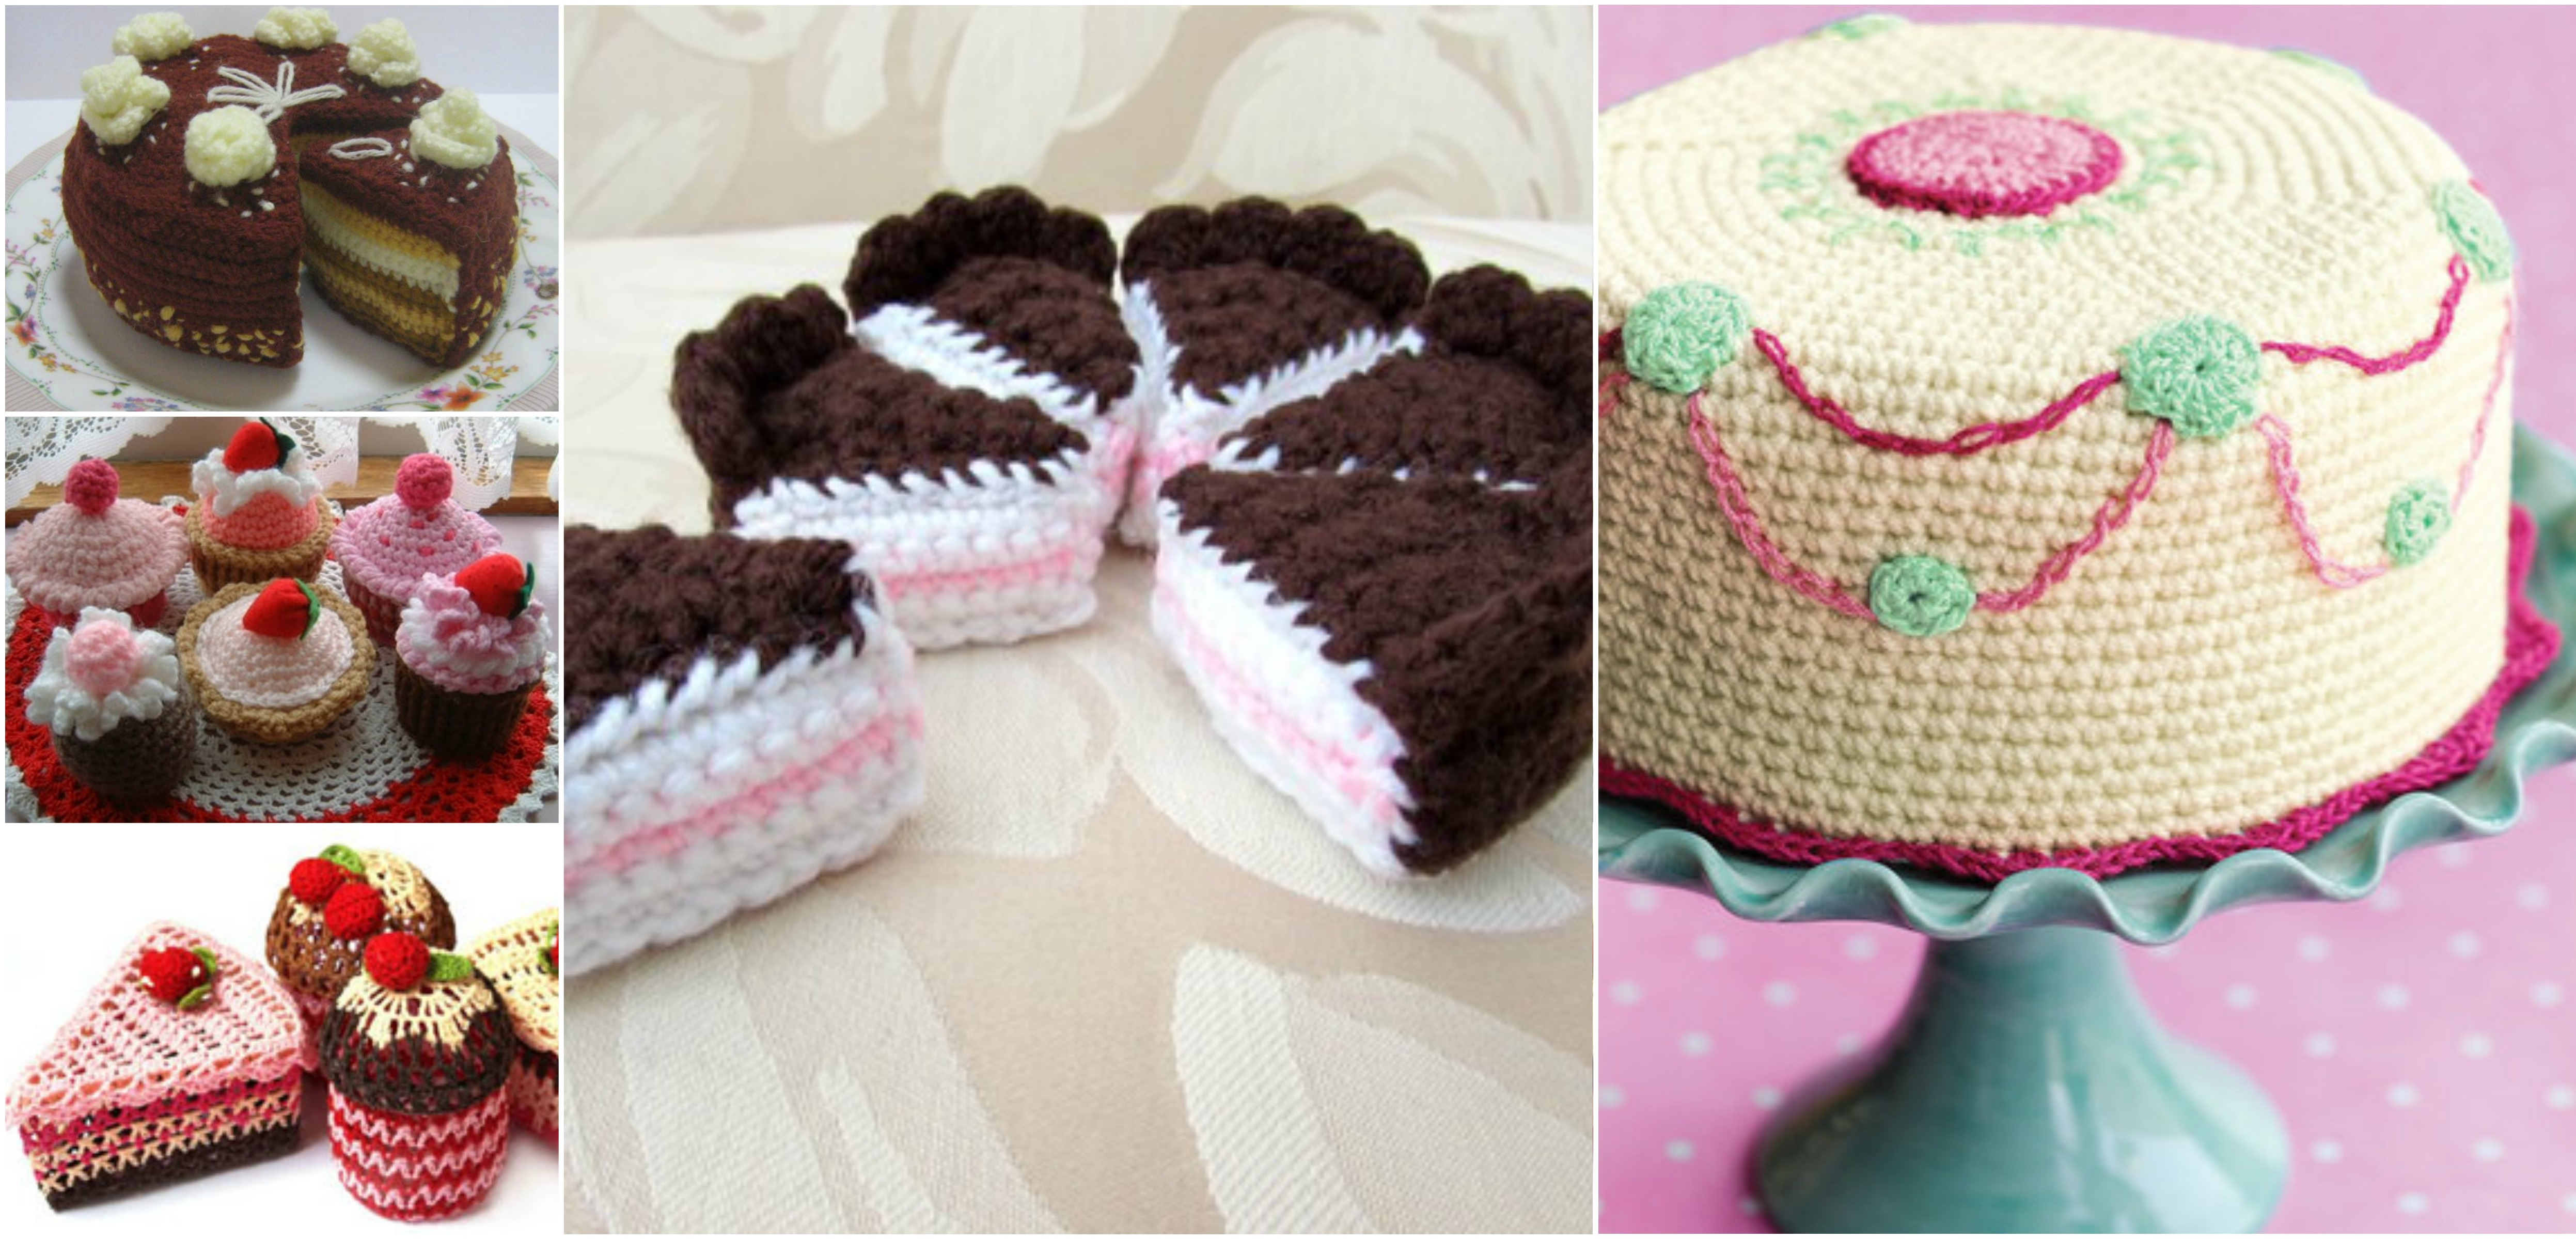 Crochet Cake And Cupcakes